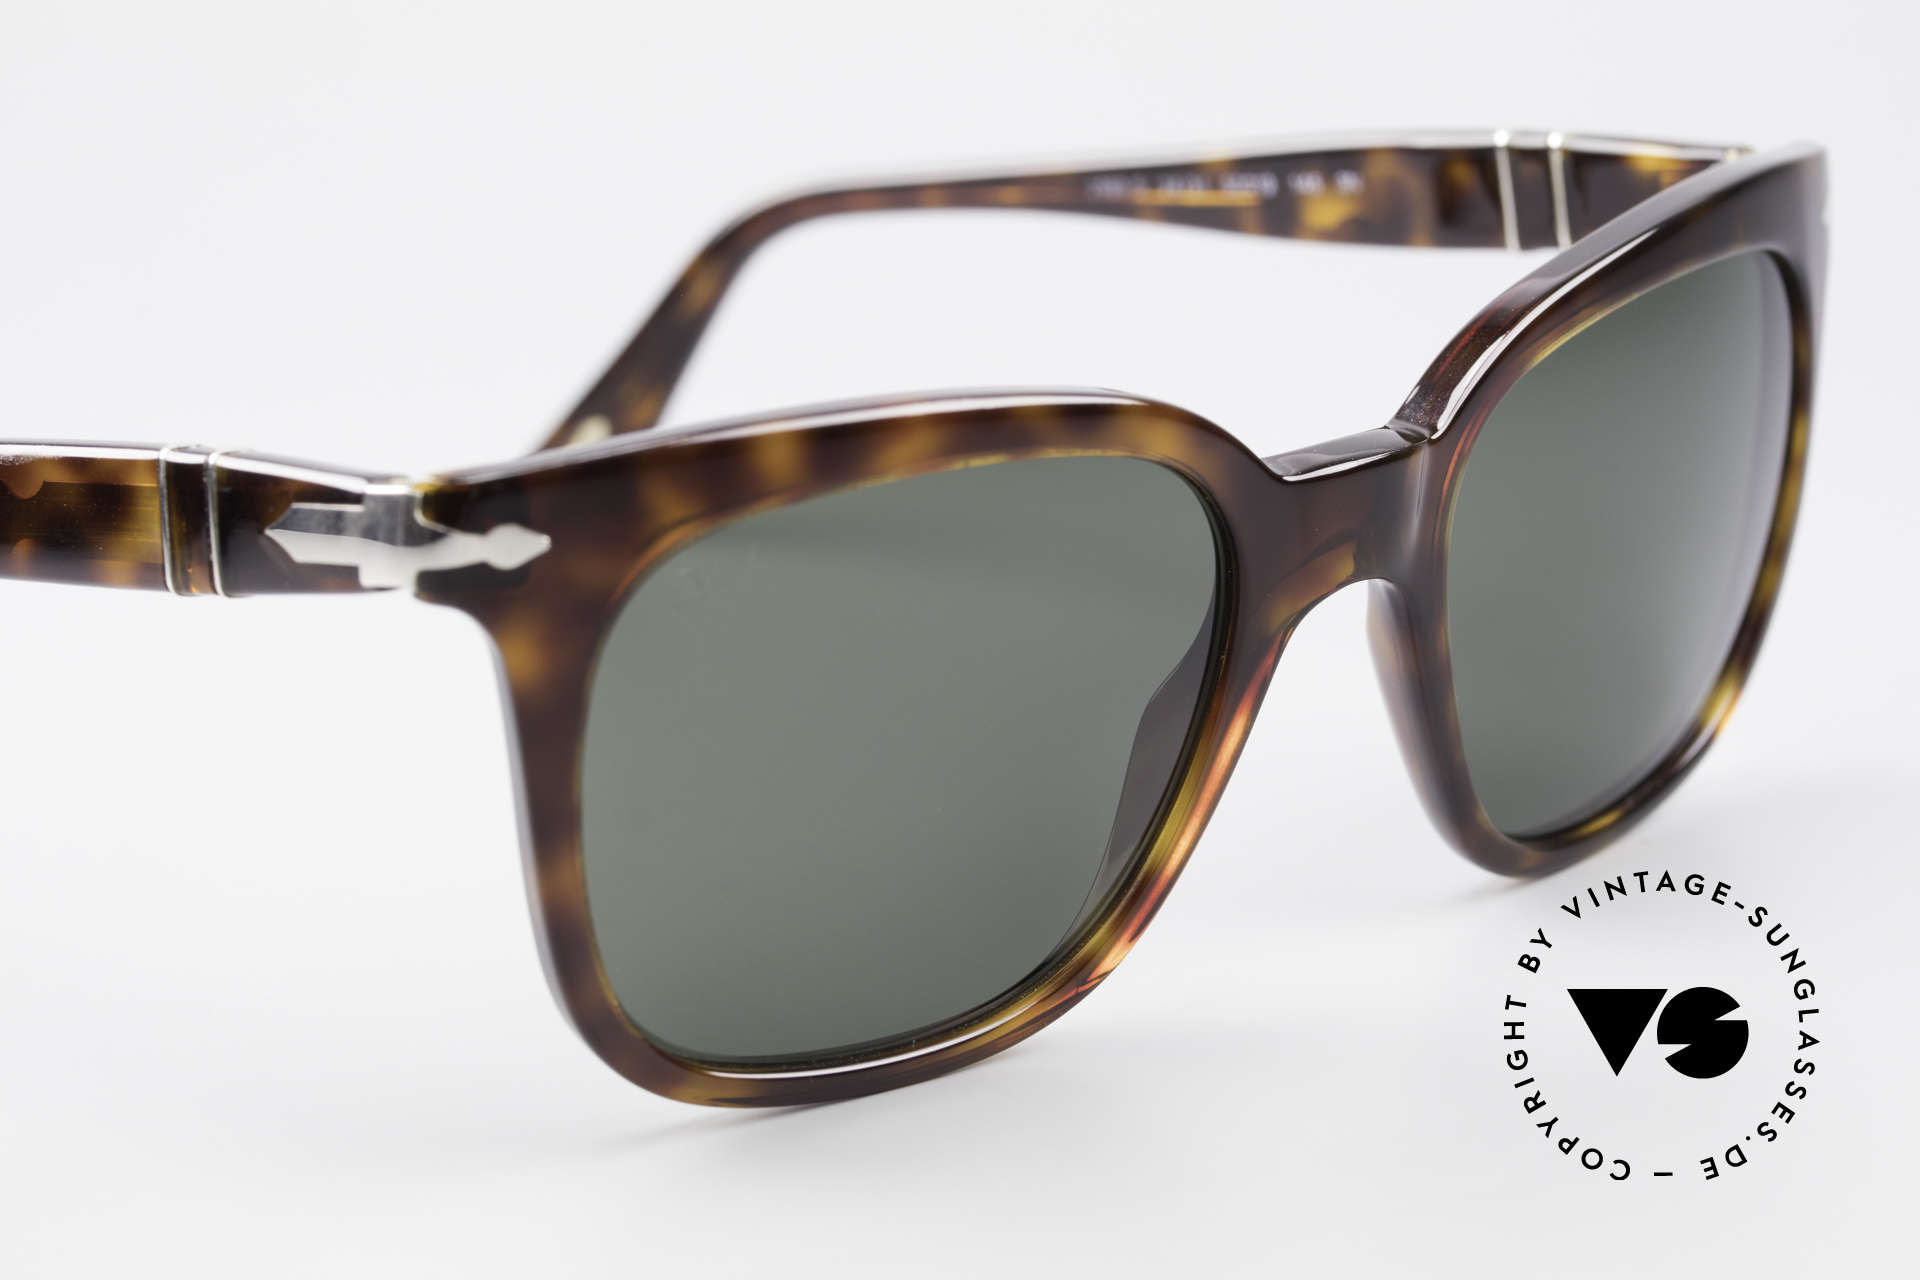 Persol 2999 Classic Ladies Sunglasses, reissue of the old vintage Persol RATTI models, Made for Women